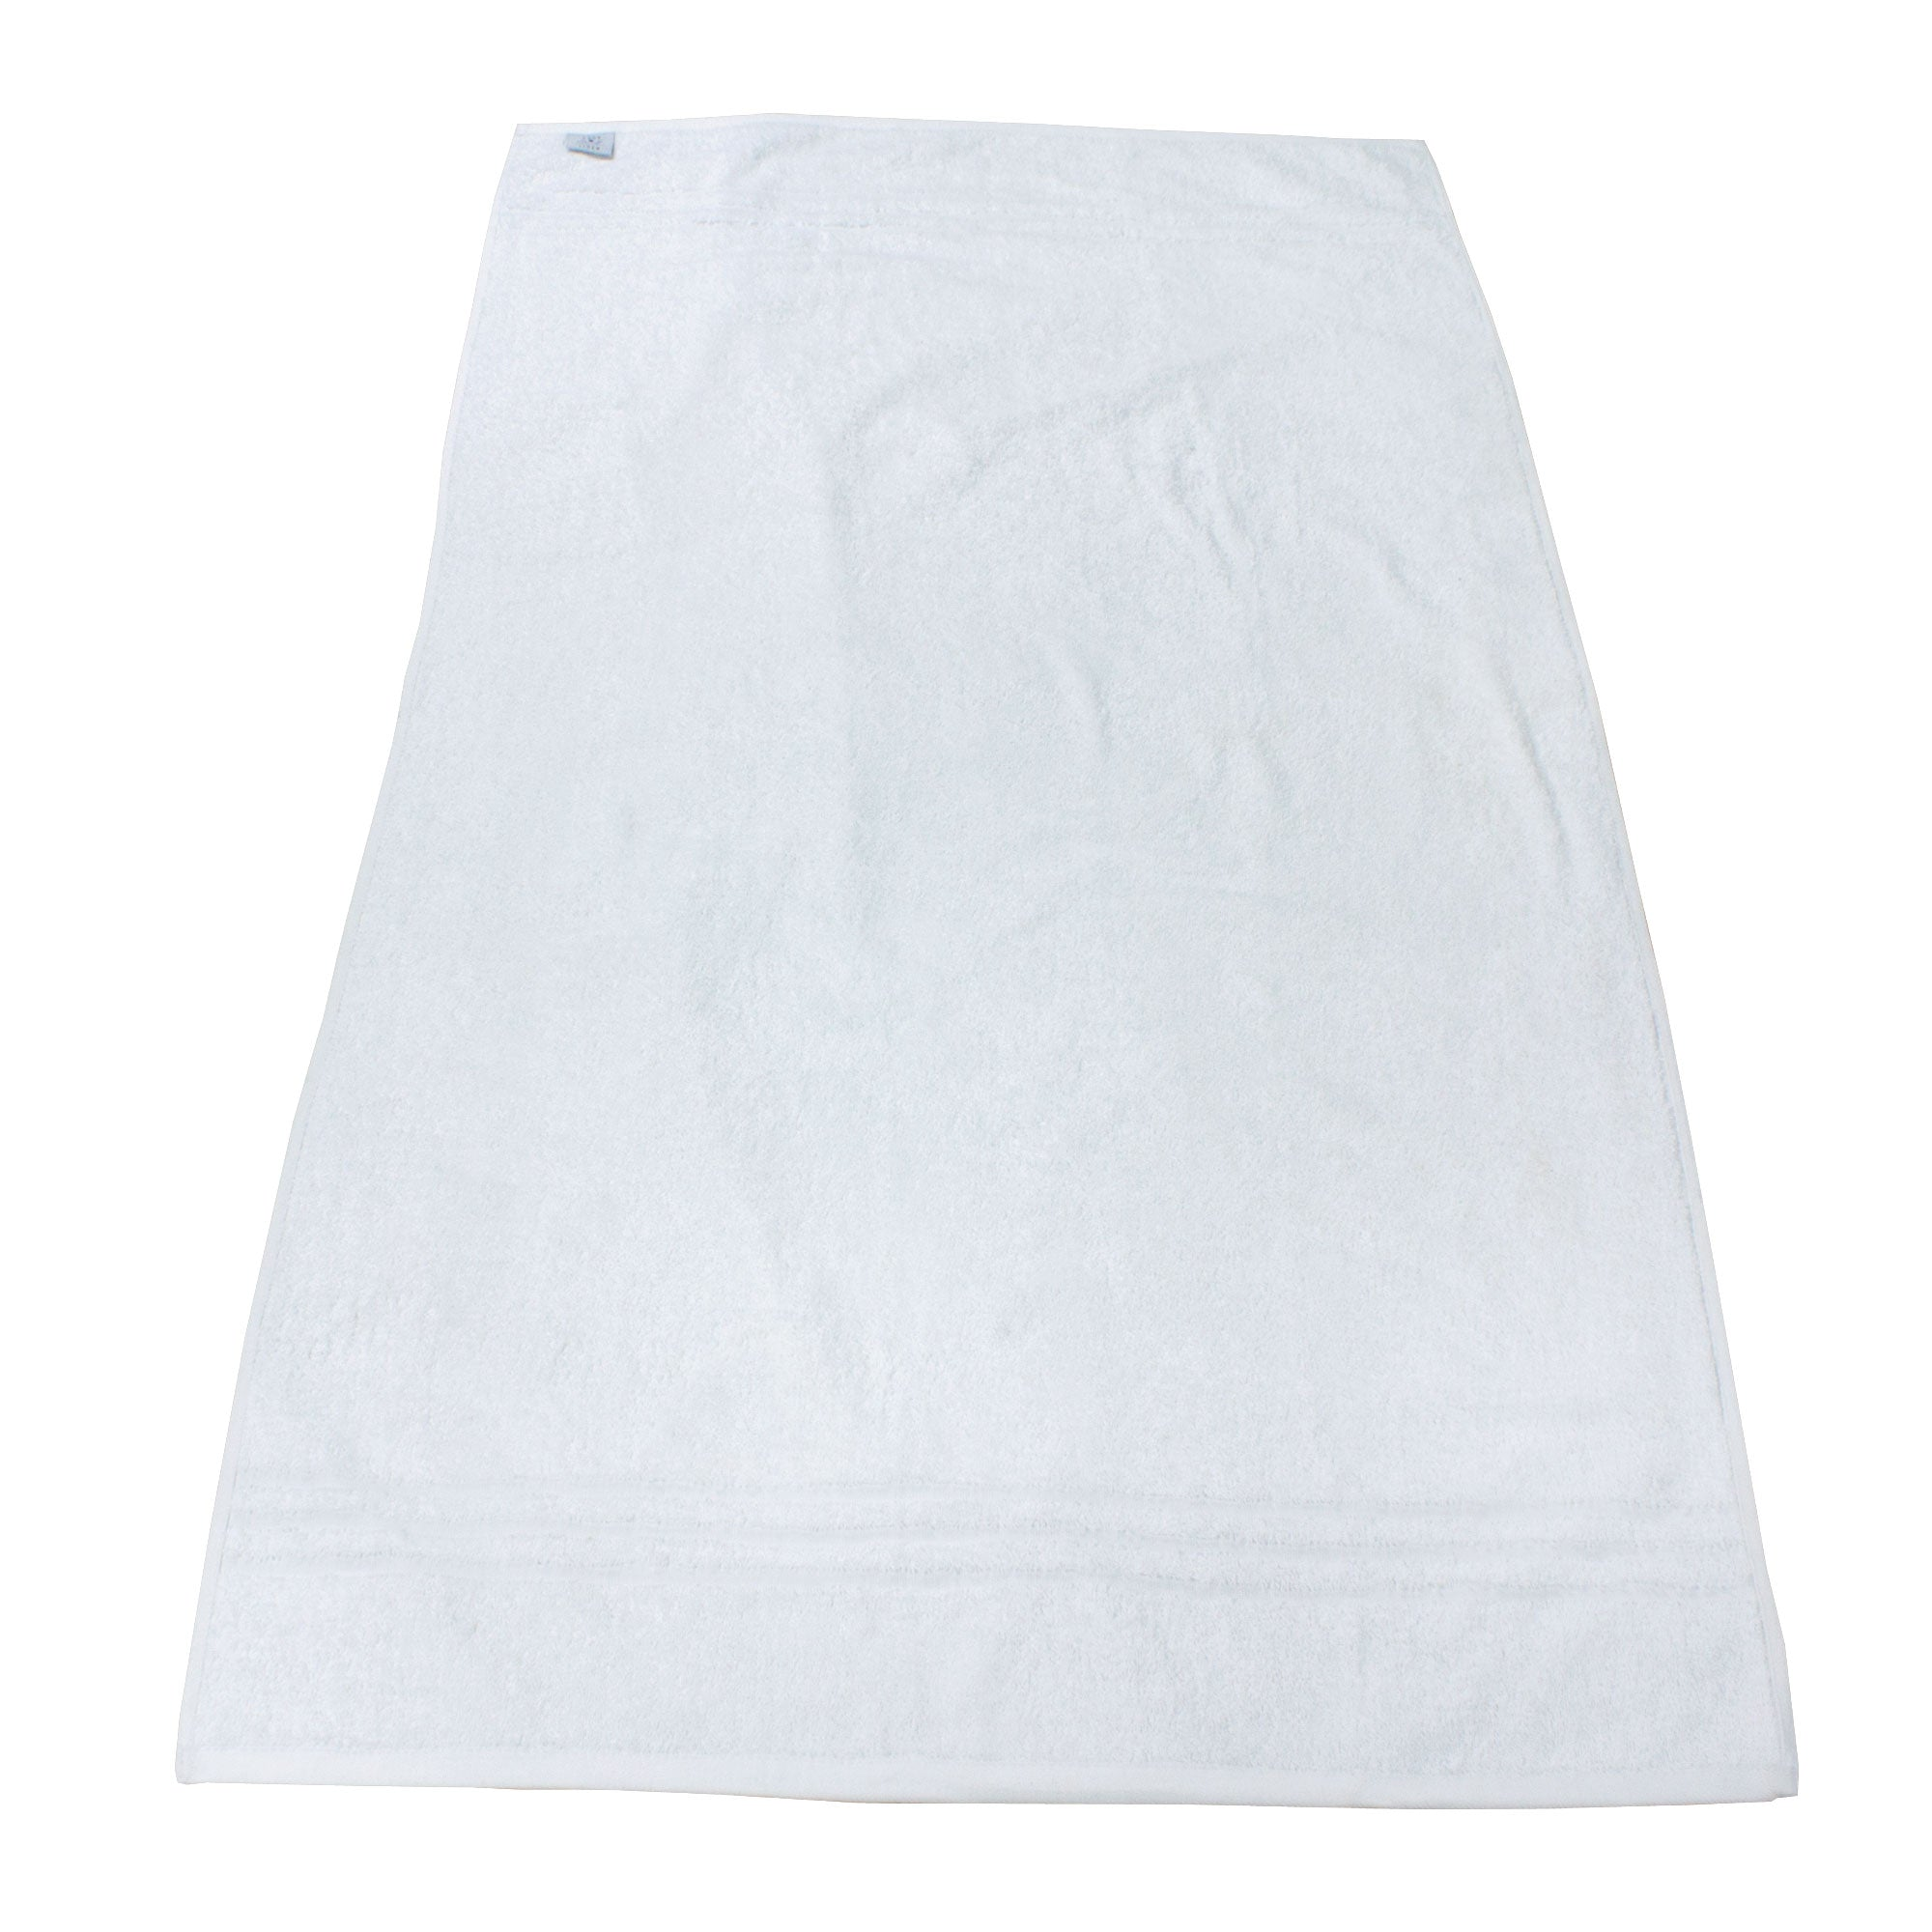 Assurance Combed Cotton Bath Towels ( 500 GSM)